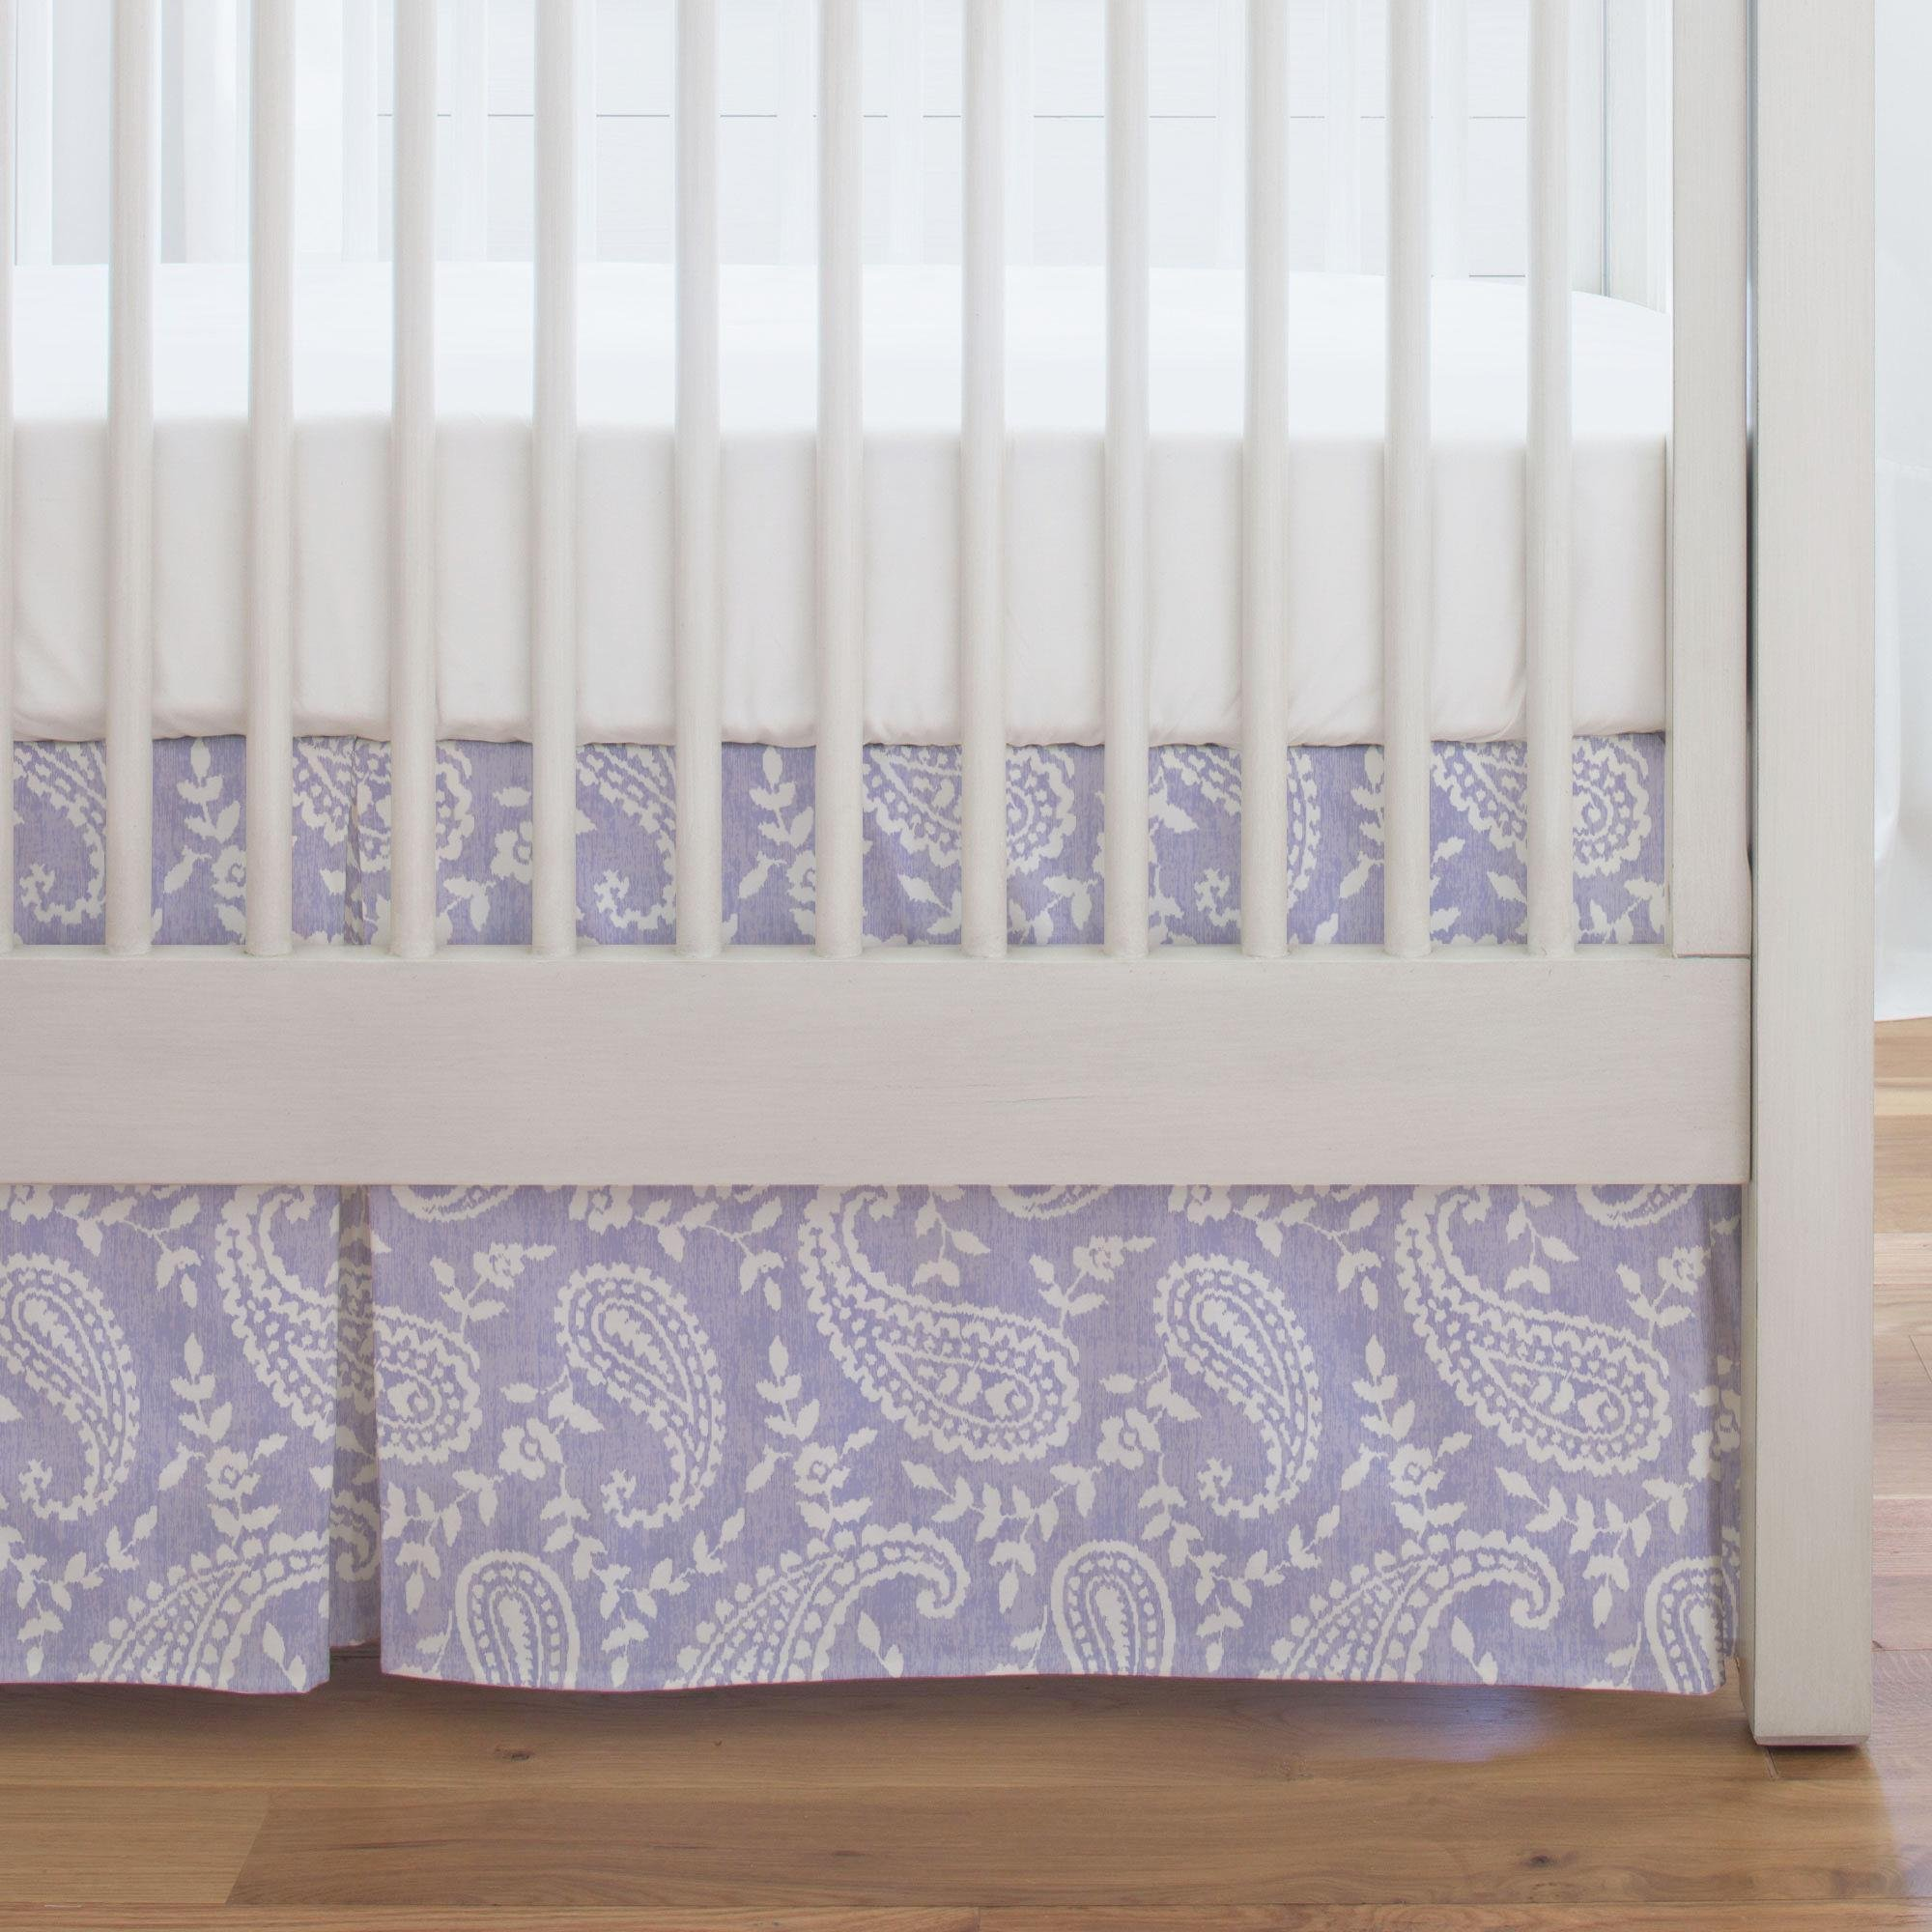 Carousel Designs Lilac Paisley Crib Skirt Single-Pleat 17-Inch Length - Organic 100% Cotton Crib Skirt - Made in The USA by Carousel Designs